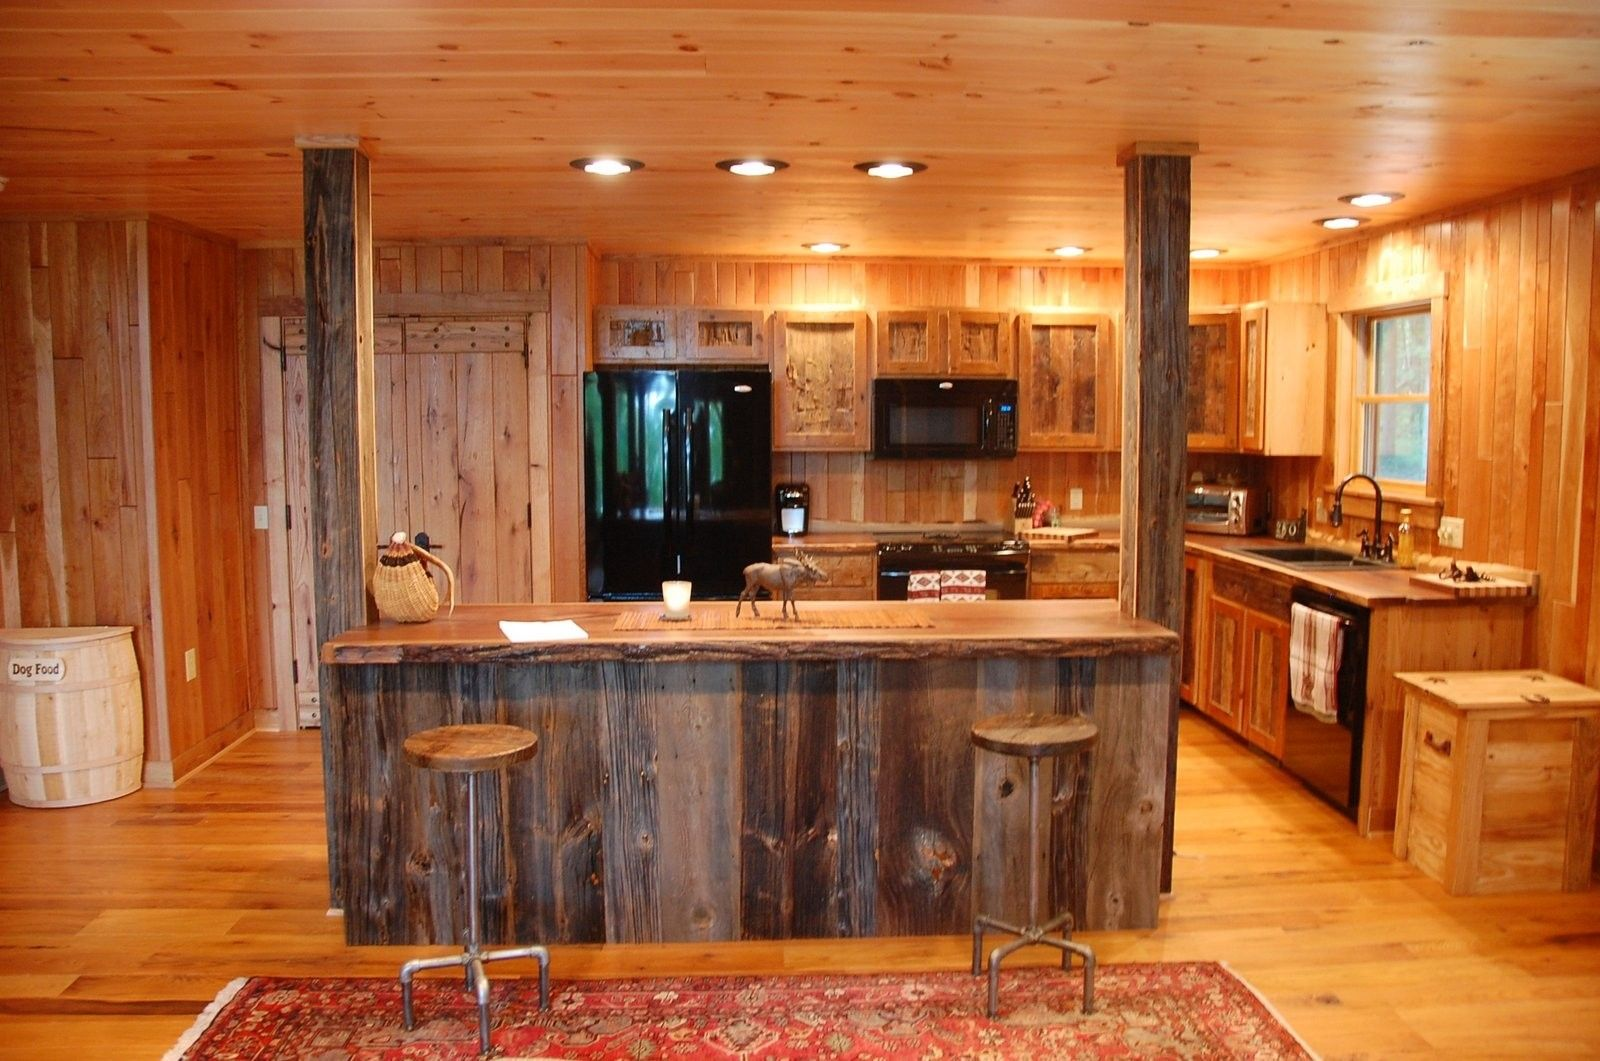 Custom made reclaimed wood rustic kitchen cabinets by for Rustic kitchen designs